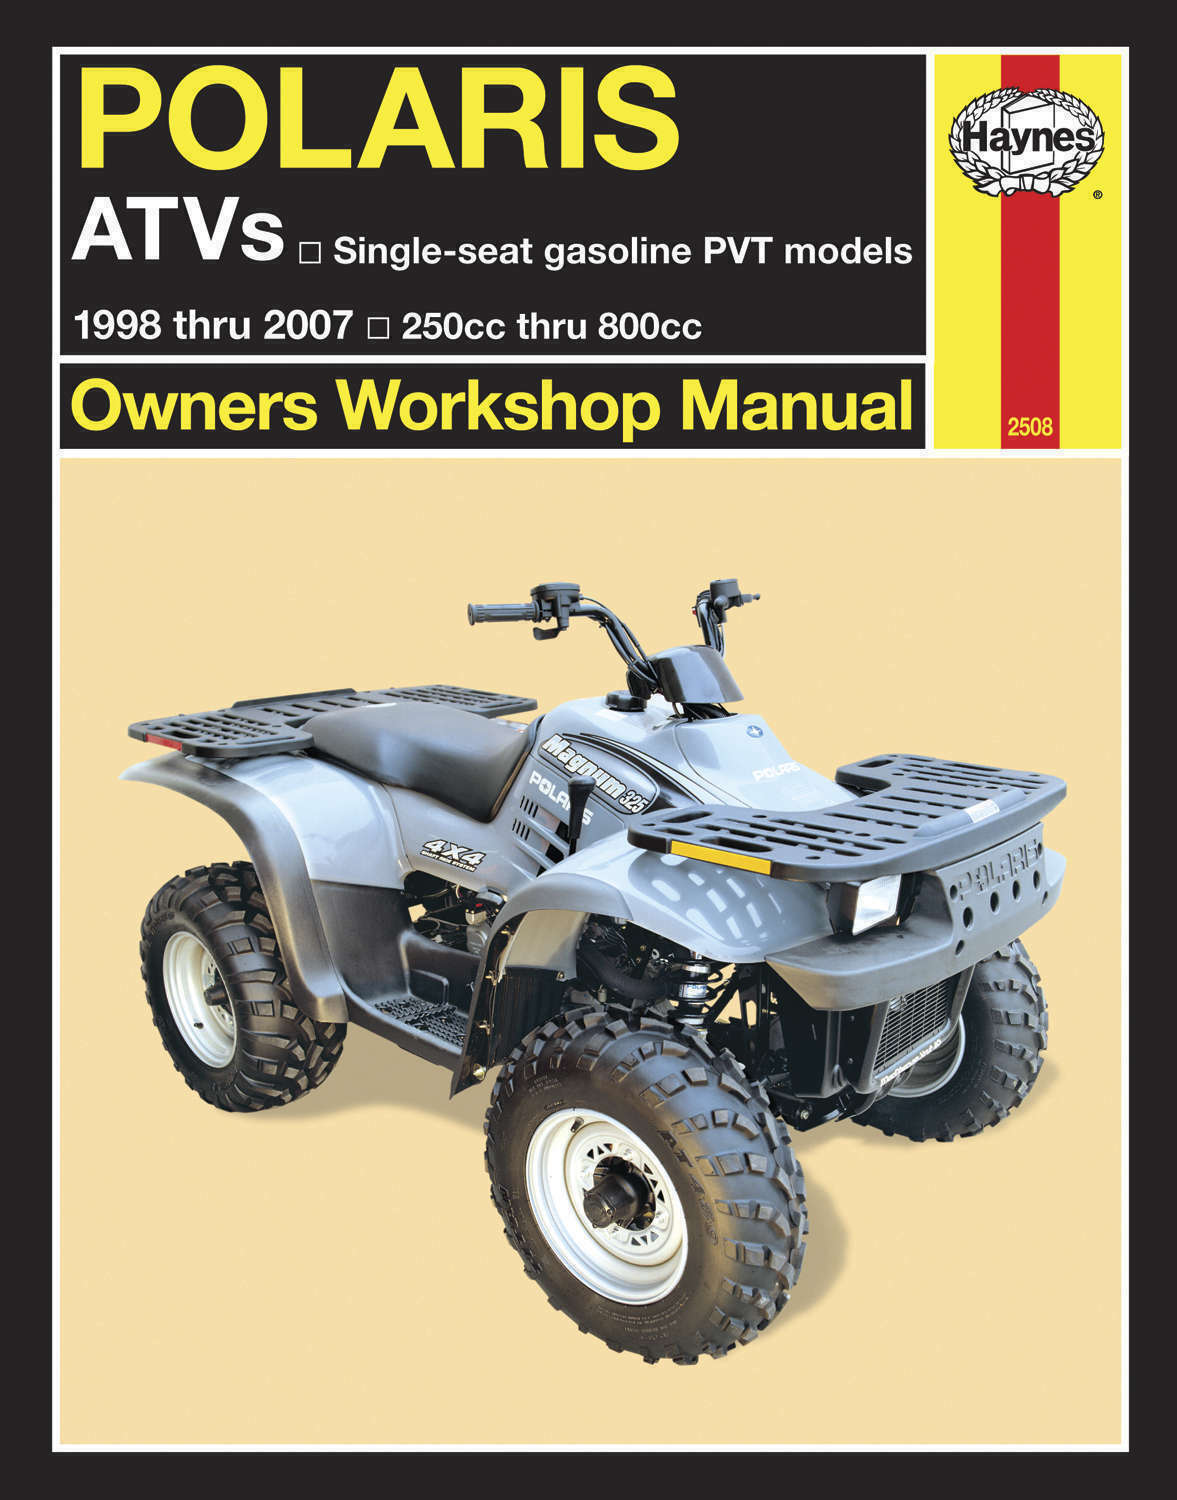 Haynes Service Manual Polaris Atp 330 500 4X4 2004-05 & 330 4X4 Quad 2005 1  of 1FREE Shipping ...